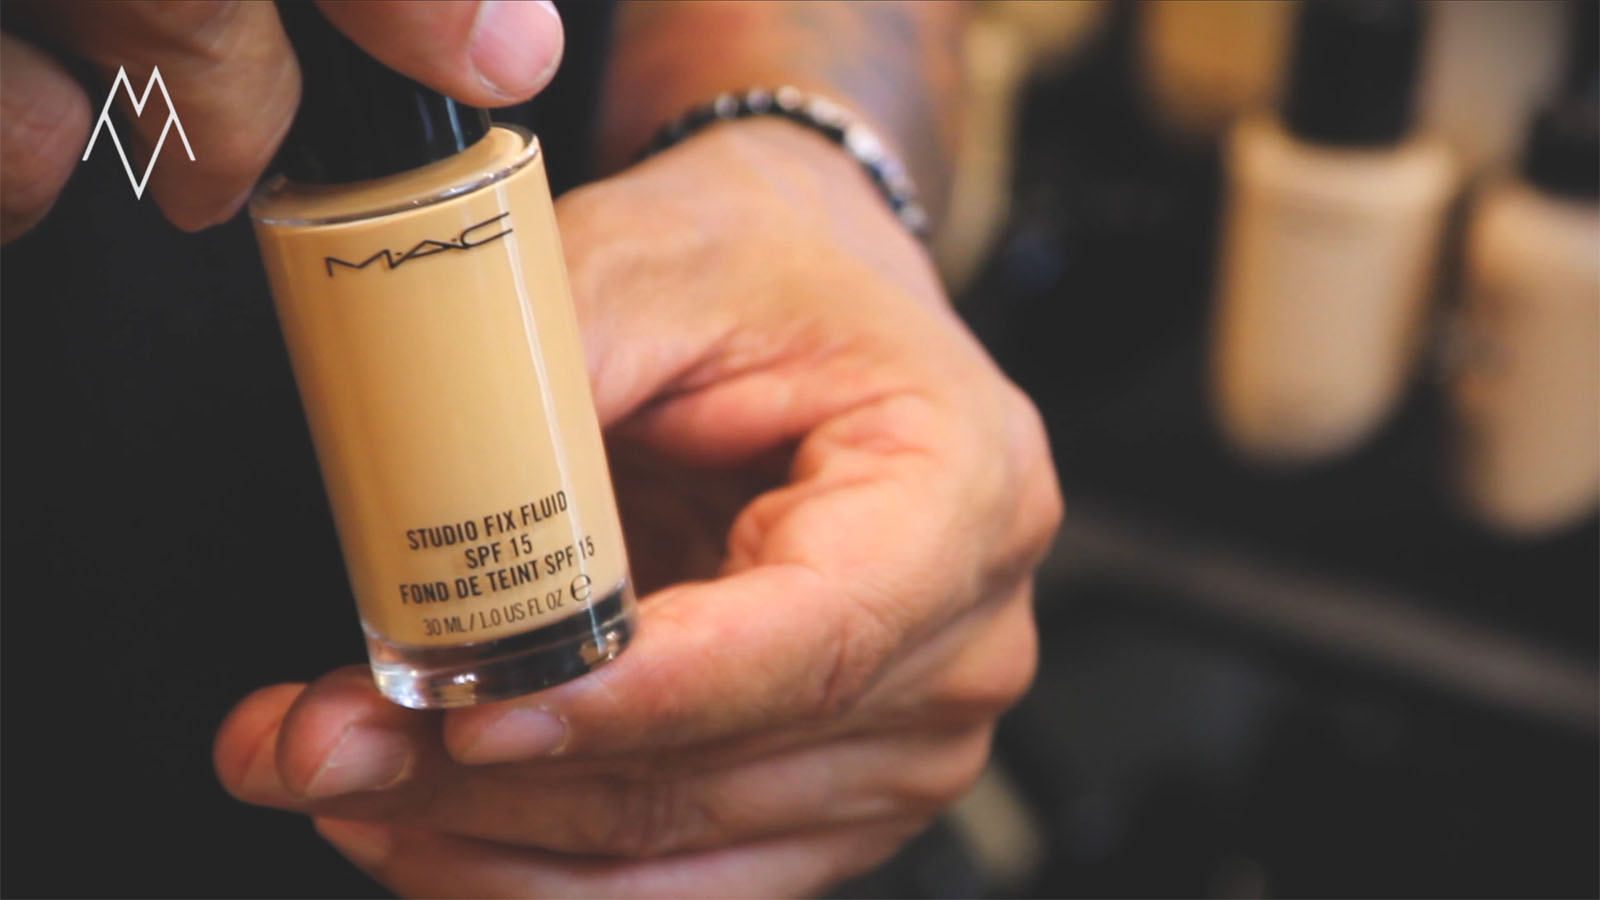 mac fluid studio fix foundation spf15